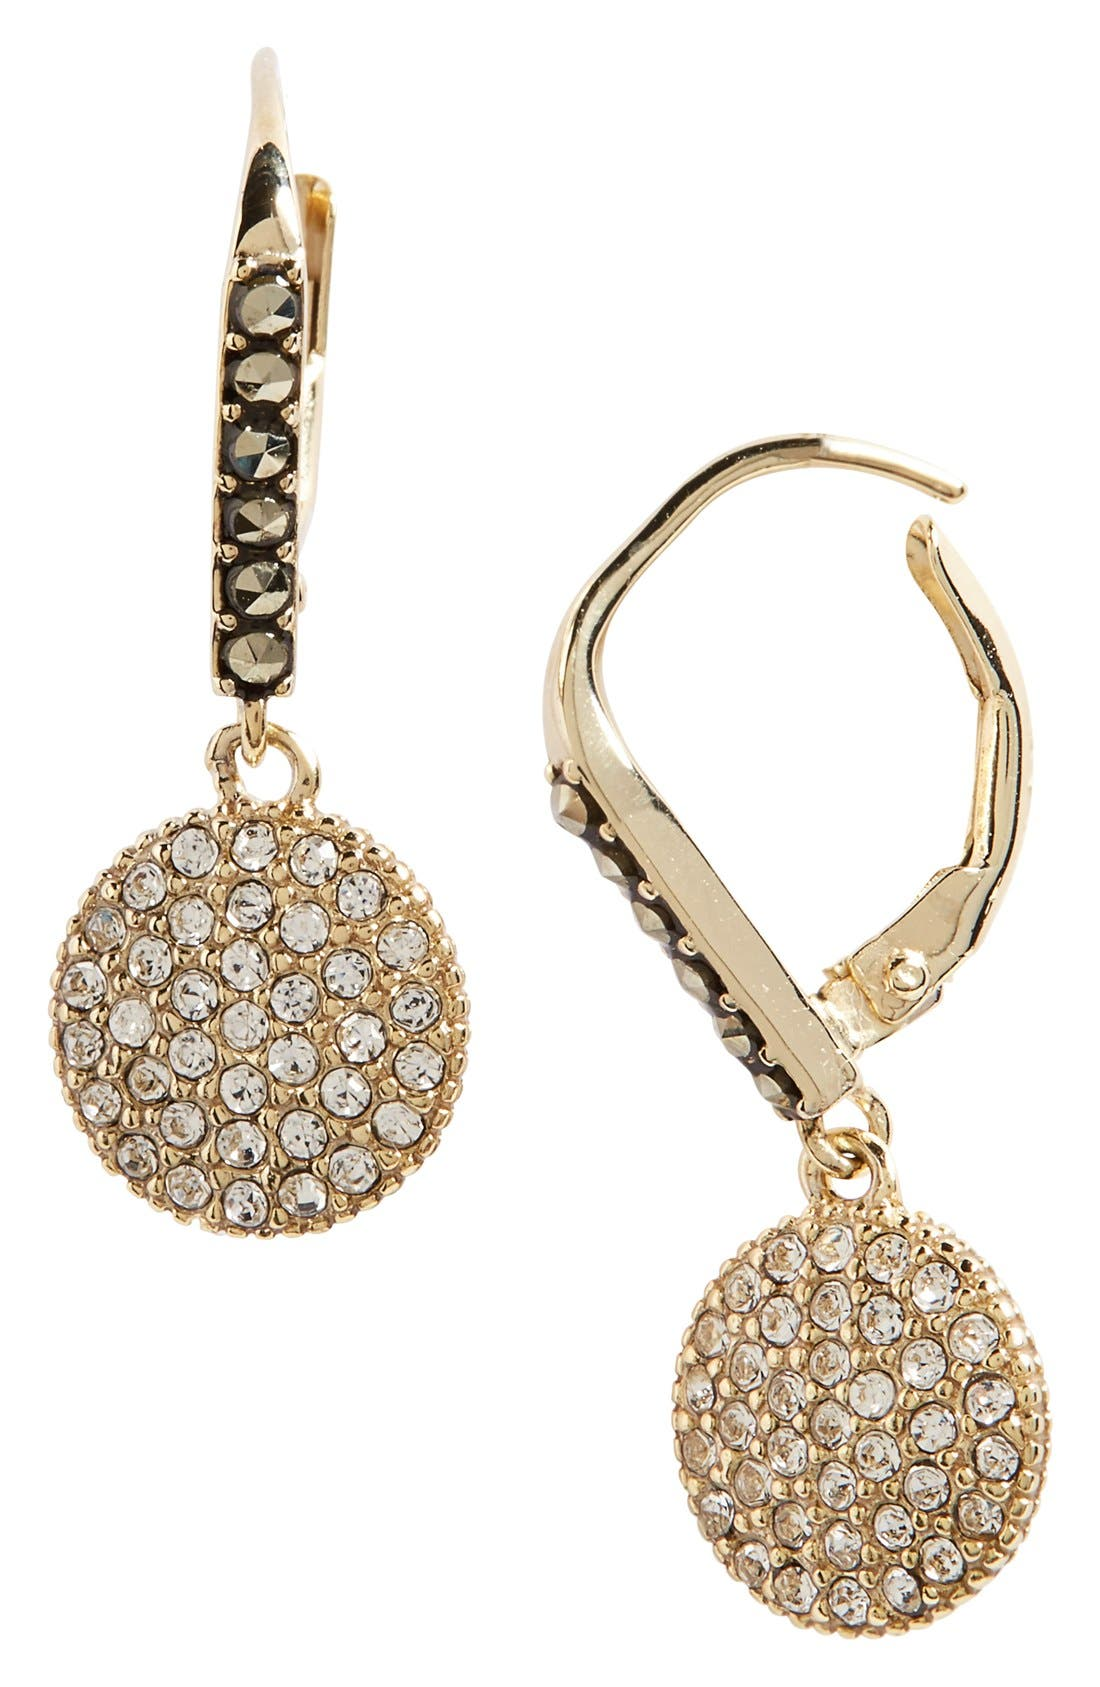 JUDITH JACK Round Drop Earrings